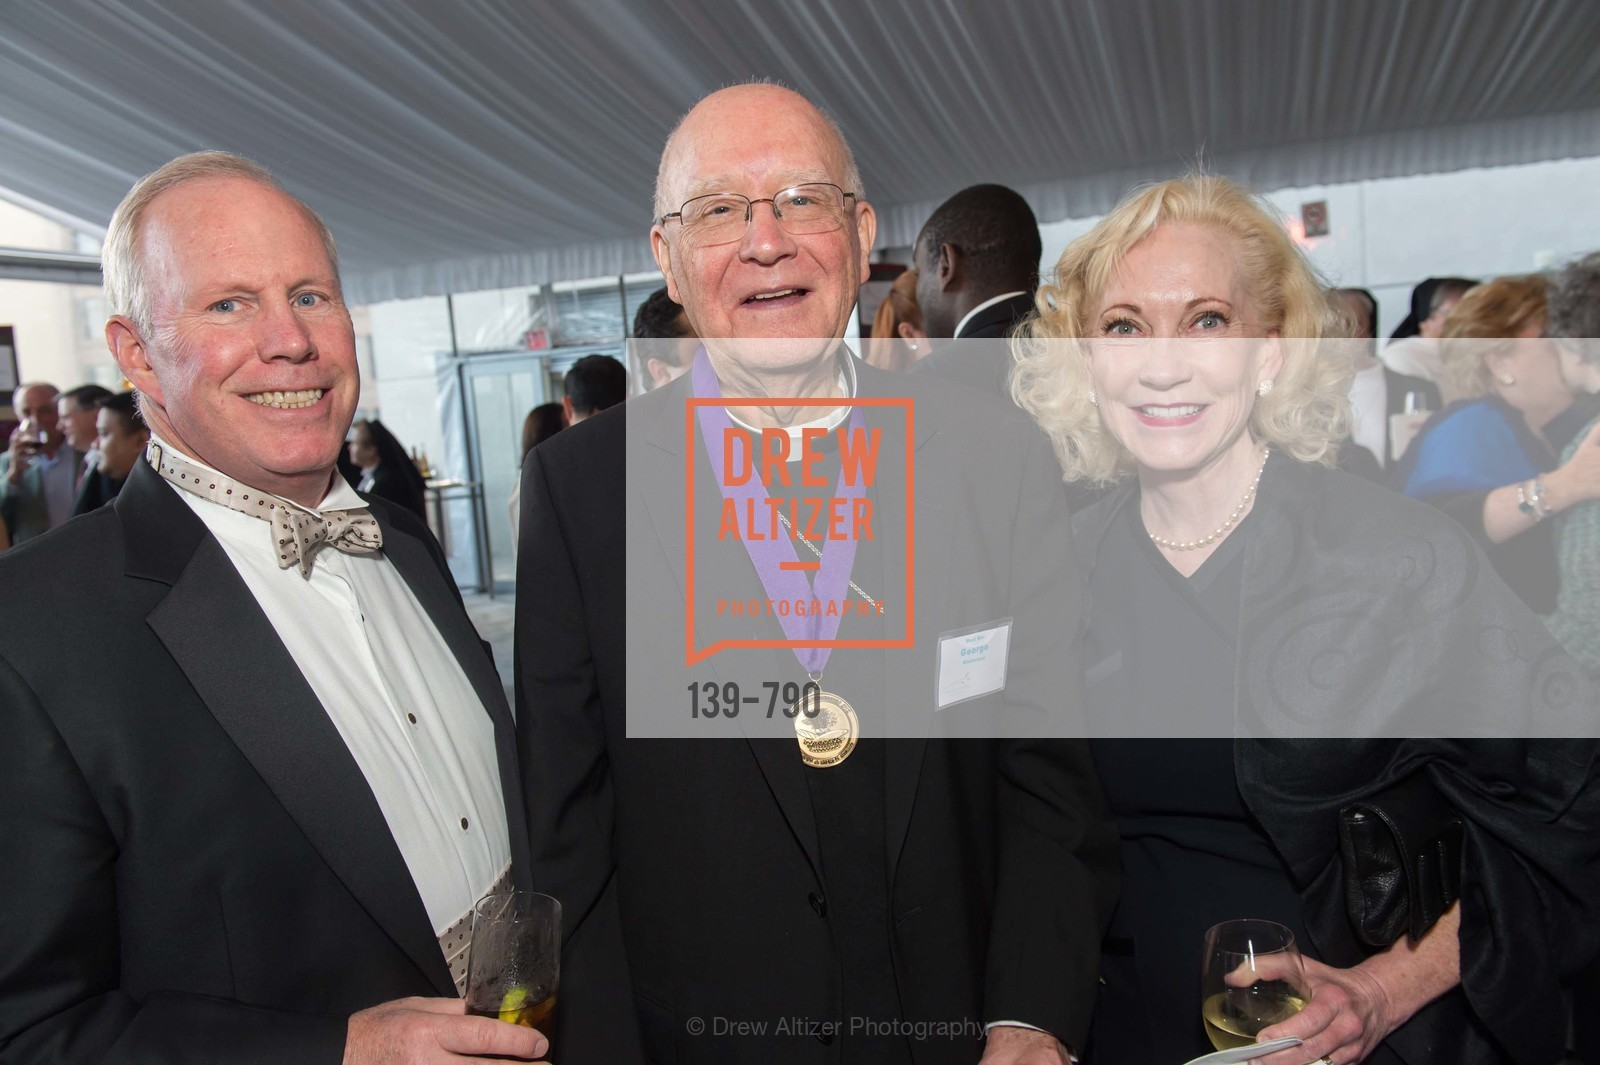 Stephen Kane, Father George Nieberauer, Jacqueline Kane, Post War and Contemporary Preview at HEDGE GALLERY, US, April 15th, 2015,Drew Altizer, Drew Altizer Photography, full-service agency, private events, San Francisco photographer, photographer california